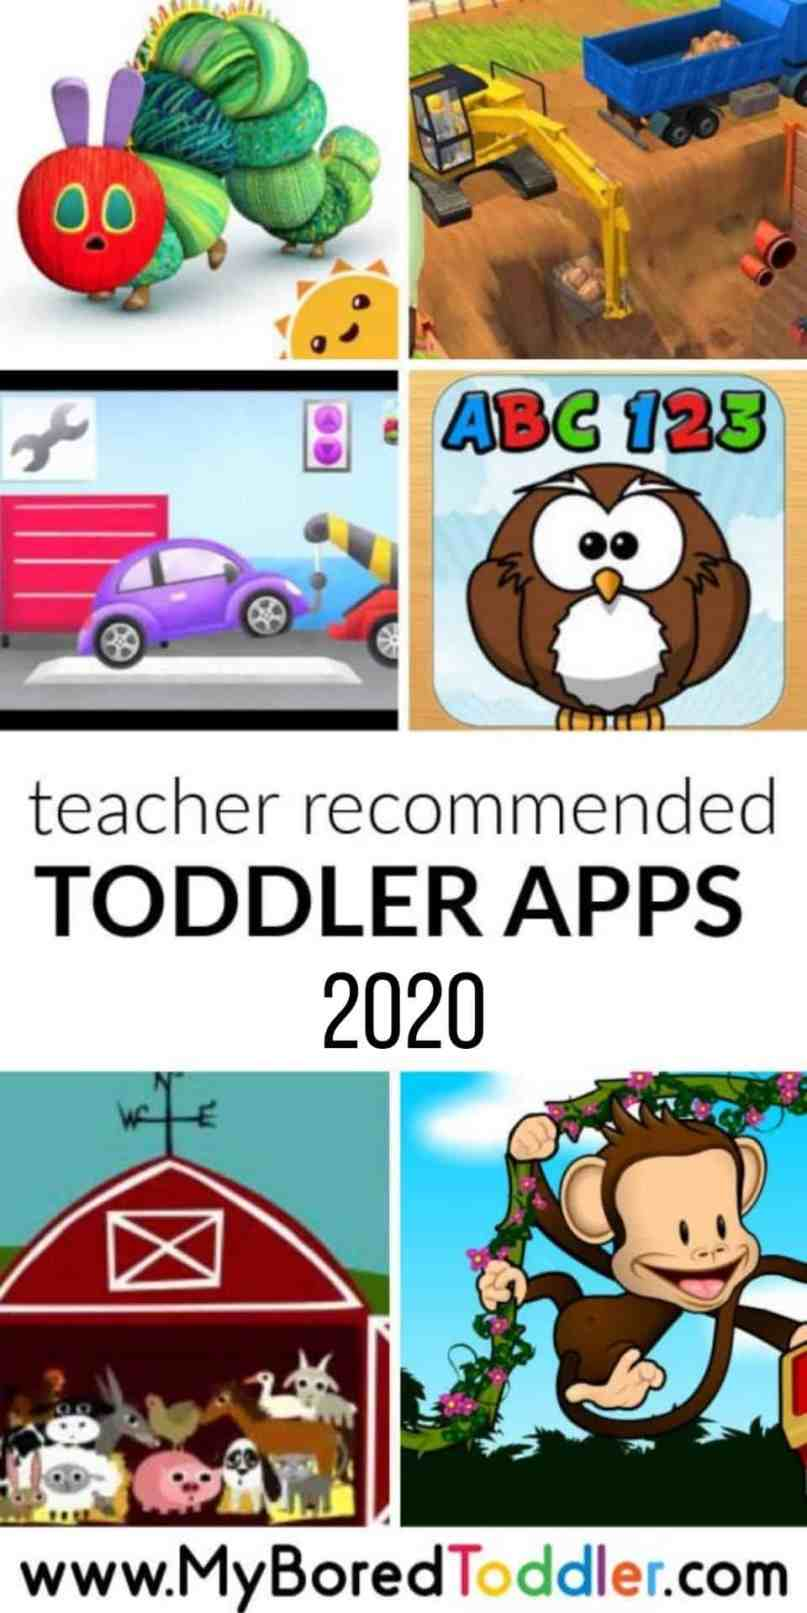 BEST APPS FOR TODDLERS 2020